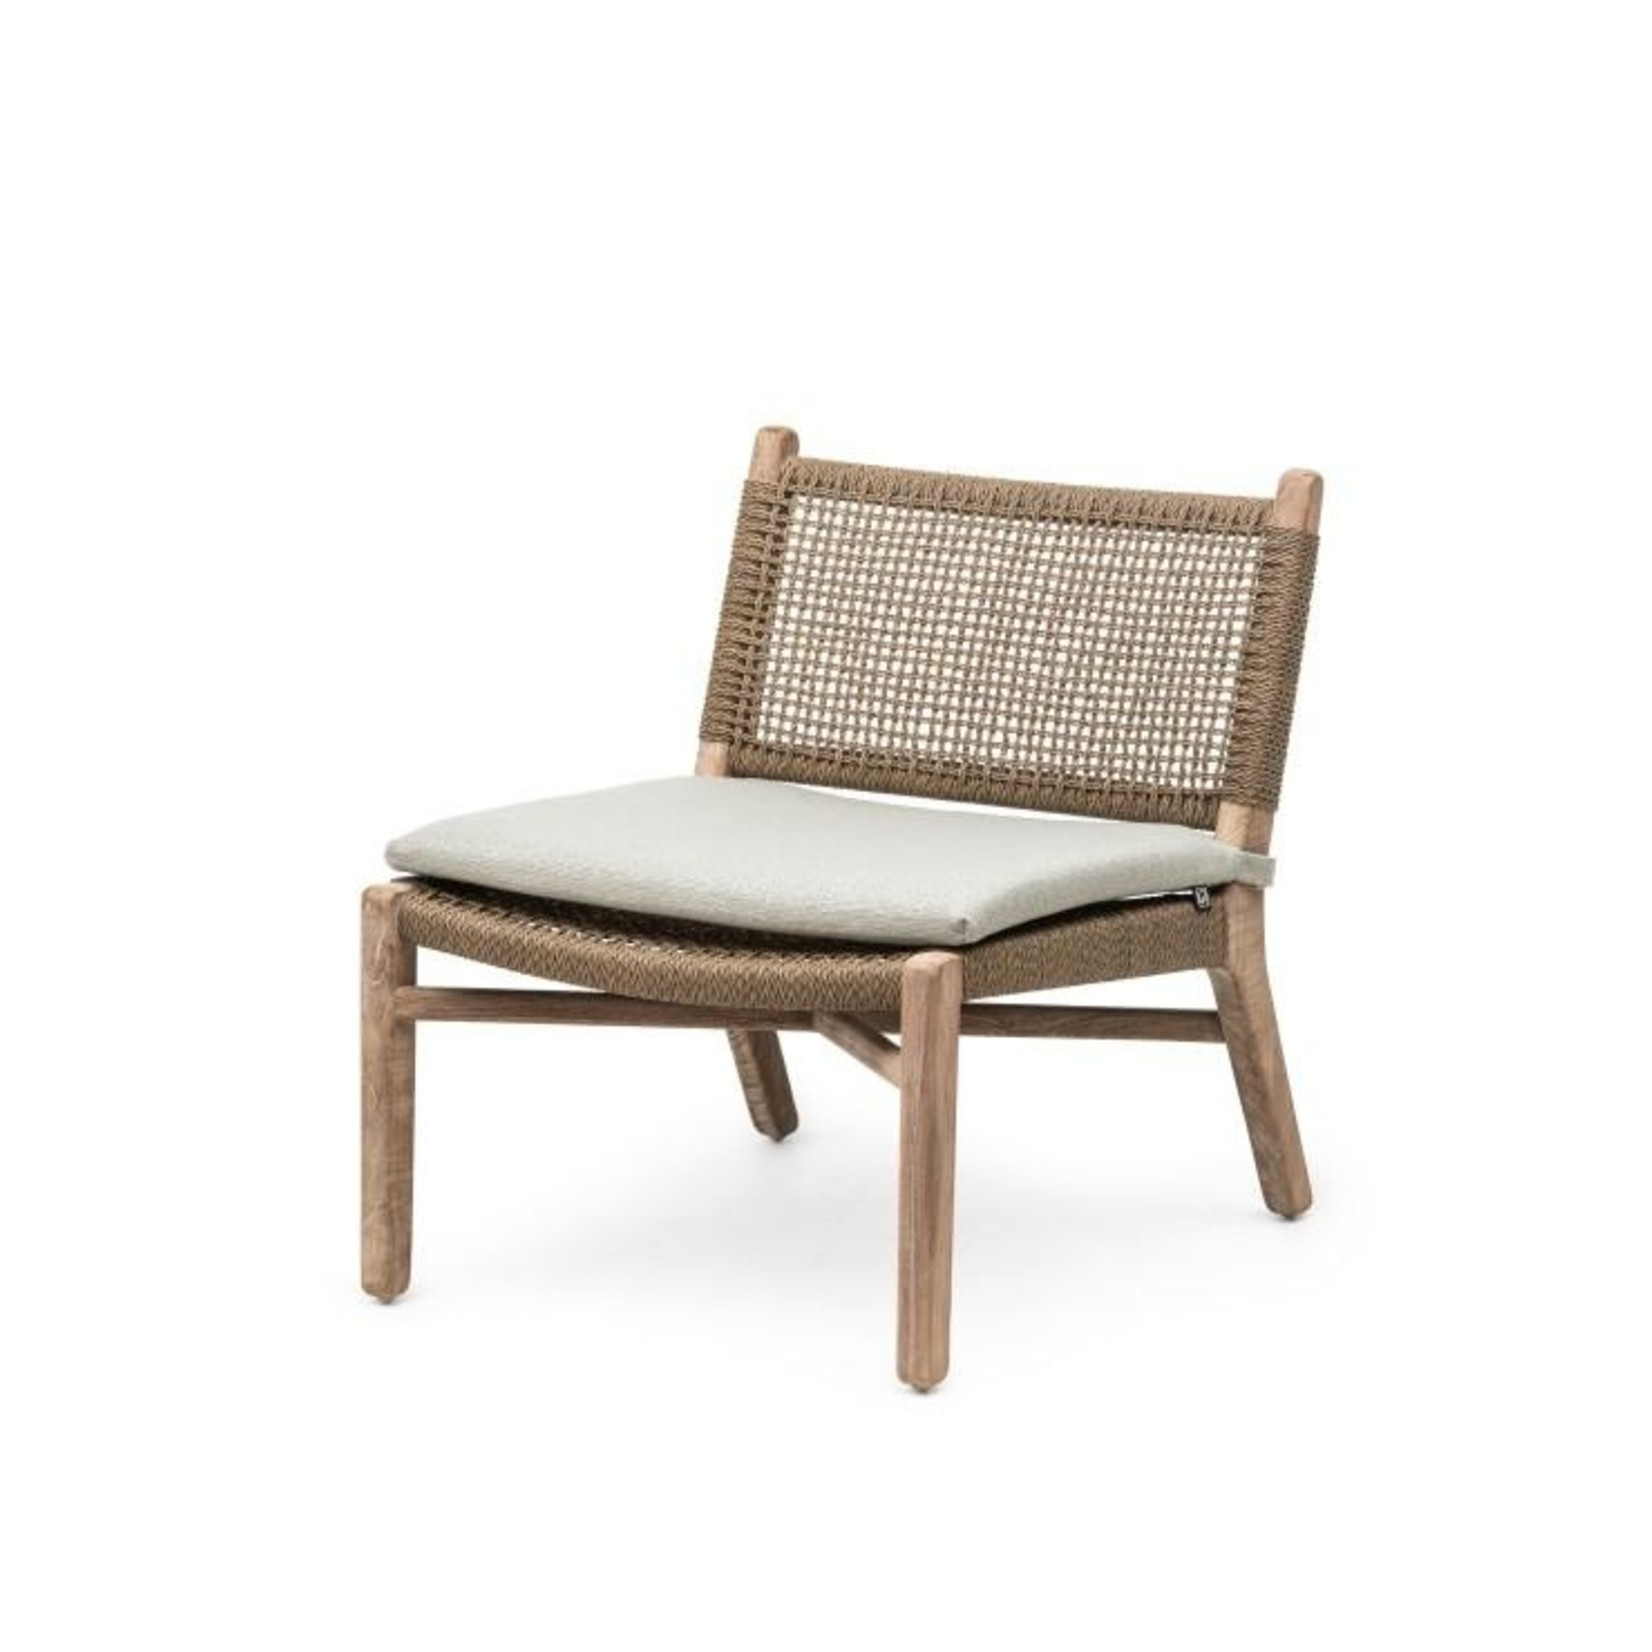 Gommaire Easy Chair Fiona   Teak Natural Gray / PE Wicker Antique Weed